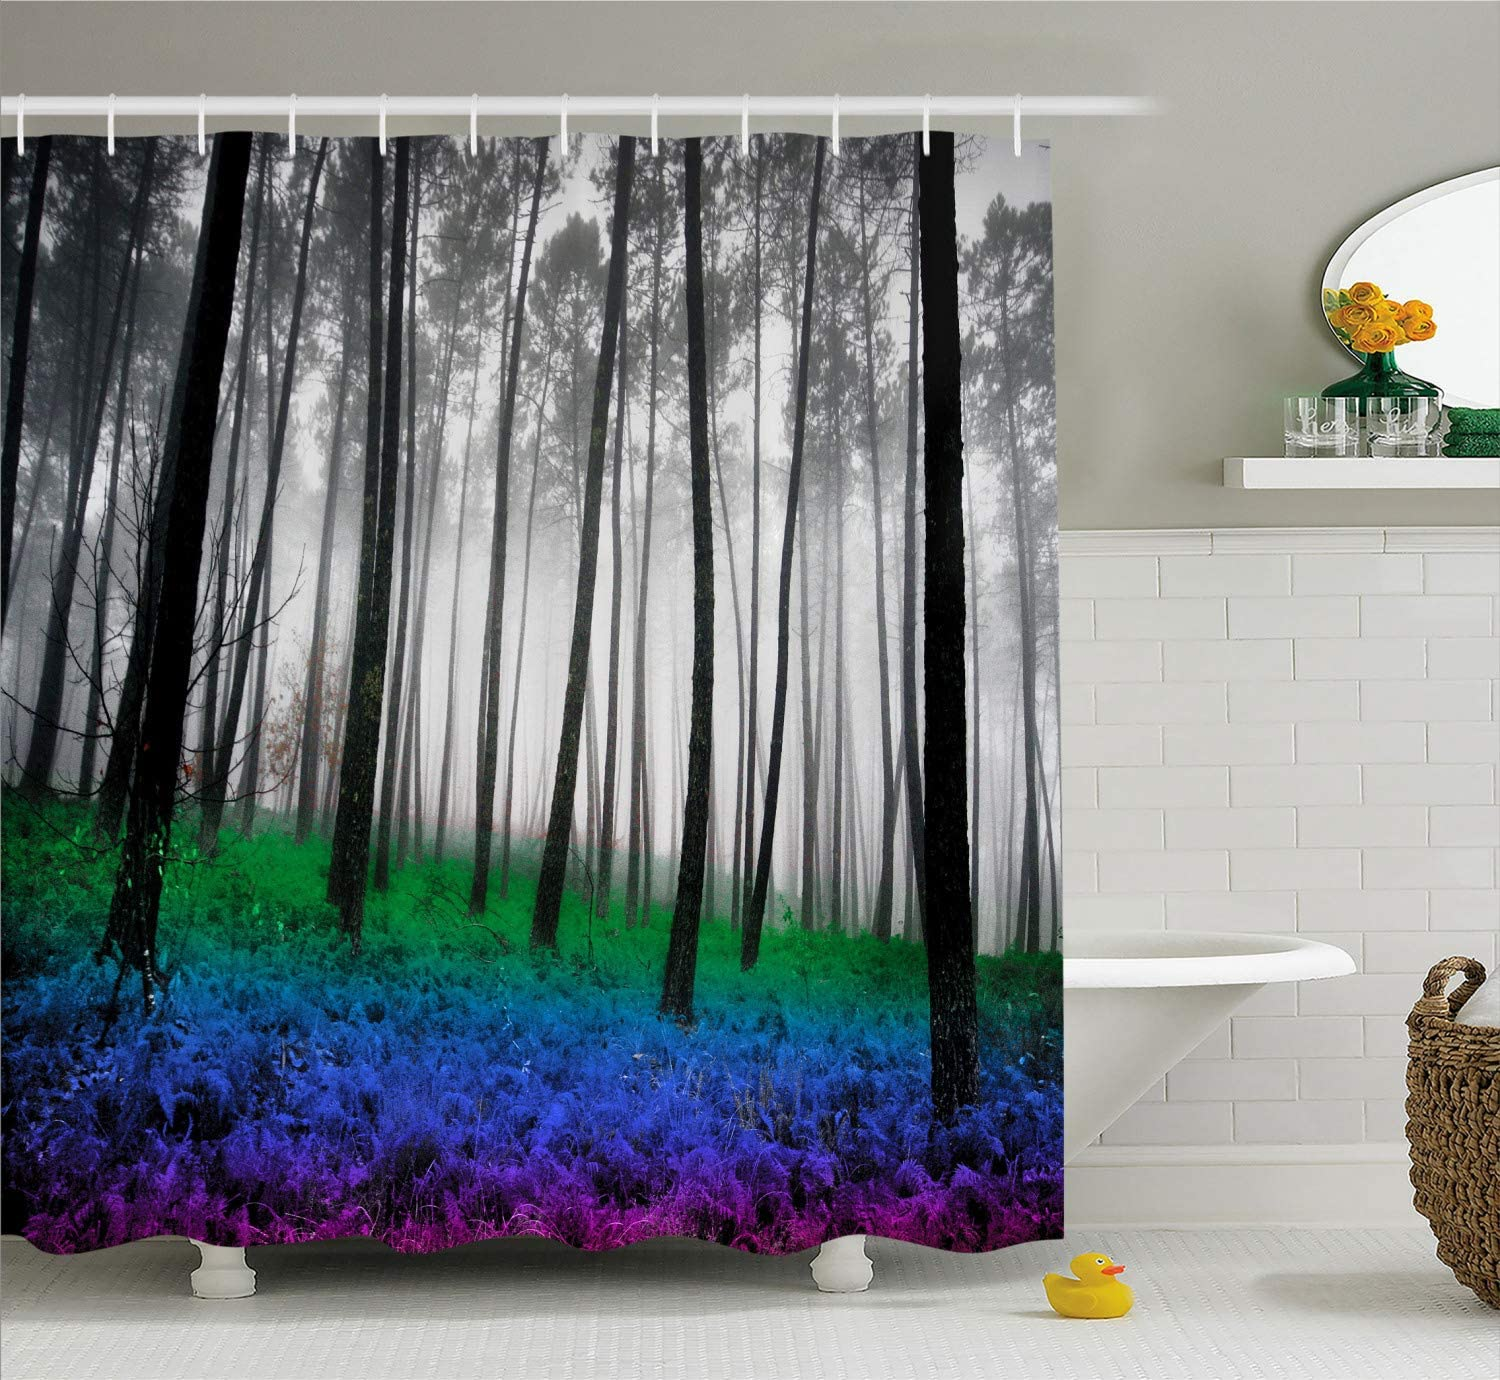 """Ambesonne Forest Shower Curtain, Mystical Fantasy Woodland Under Heavy Fog Tall Trees Bushes Contrast Colors, Cloth Fabric Bathroom Decor Set with Hooks, 70"""" Long, Blue Green"""